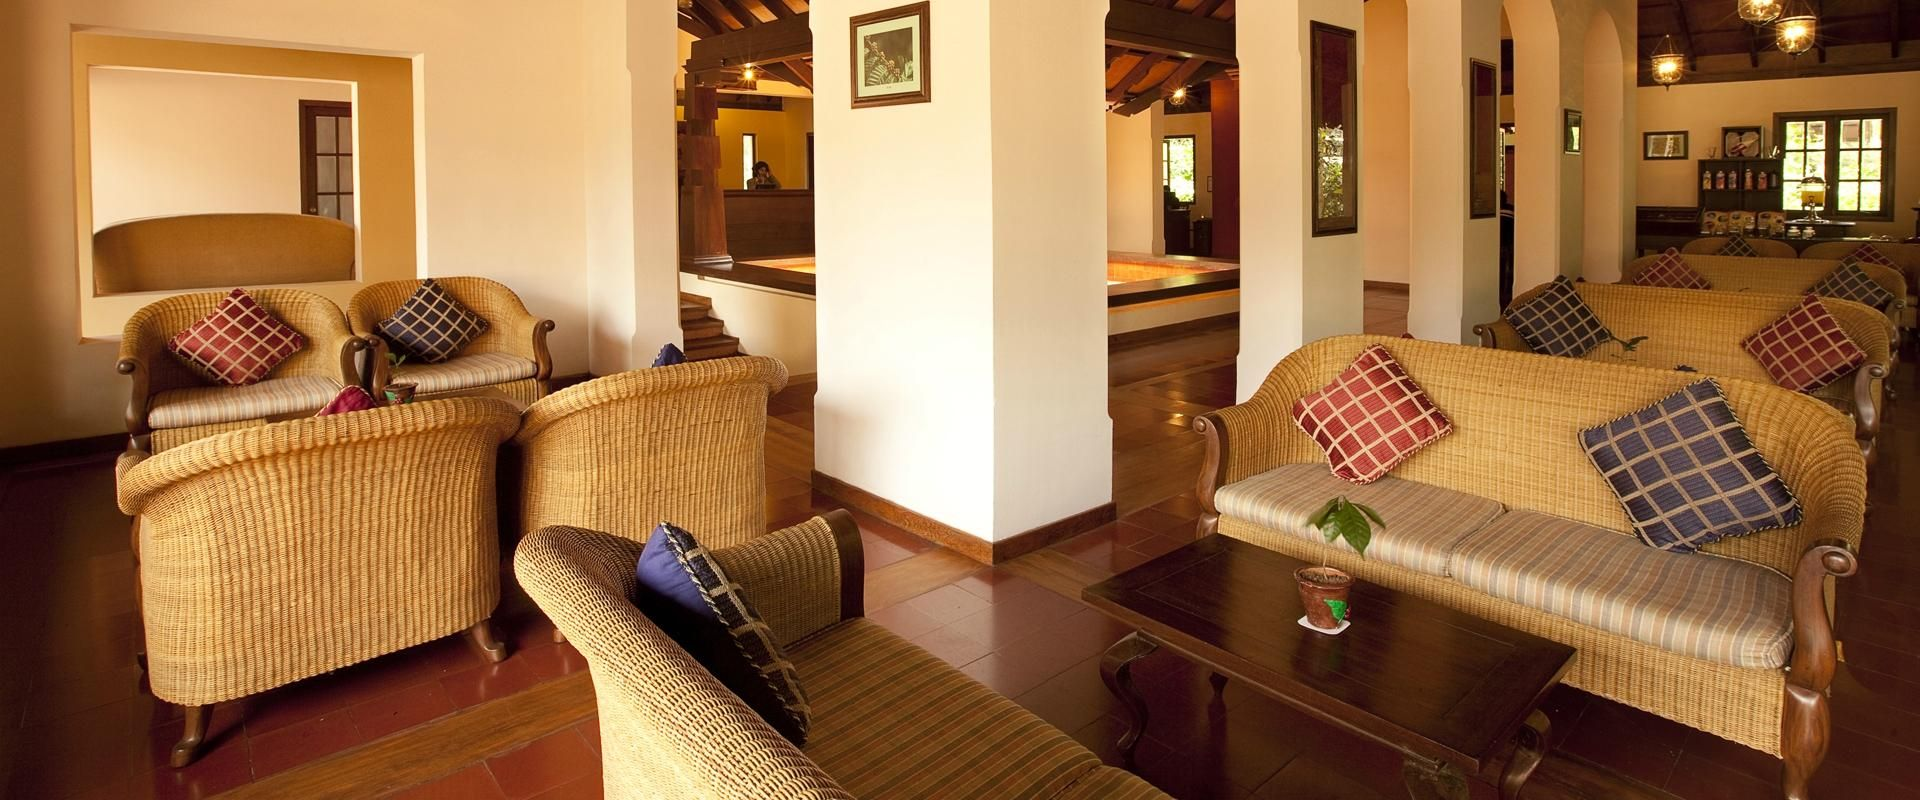 Club Mahindra Madikeri Coorg Hotel Reviews Trip Advisor Hotel